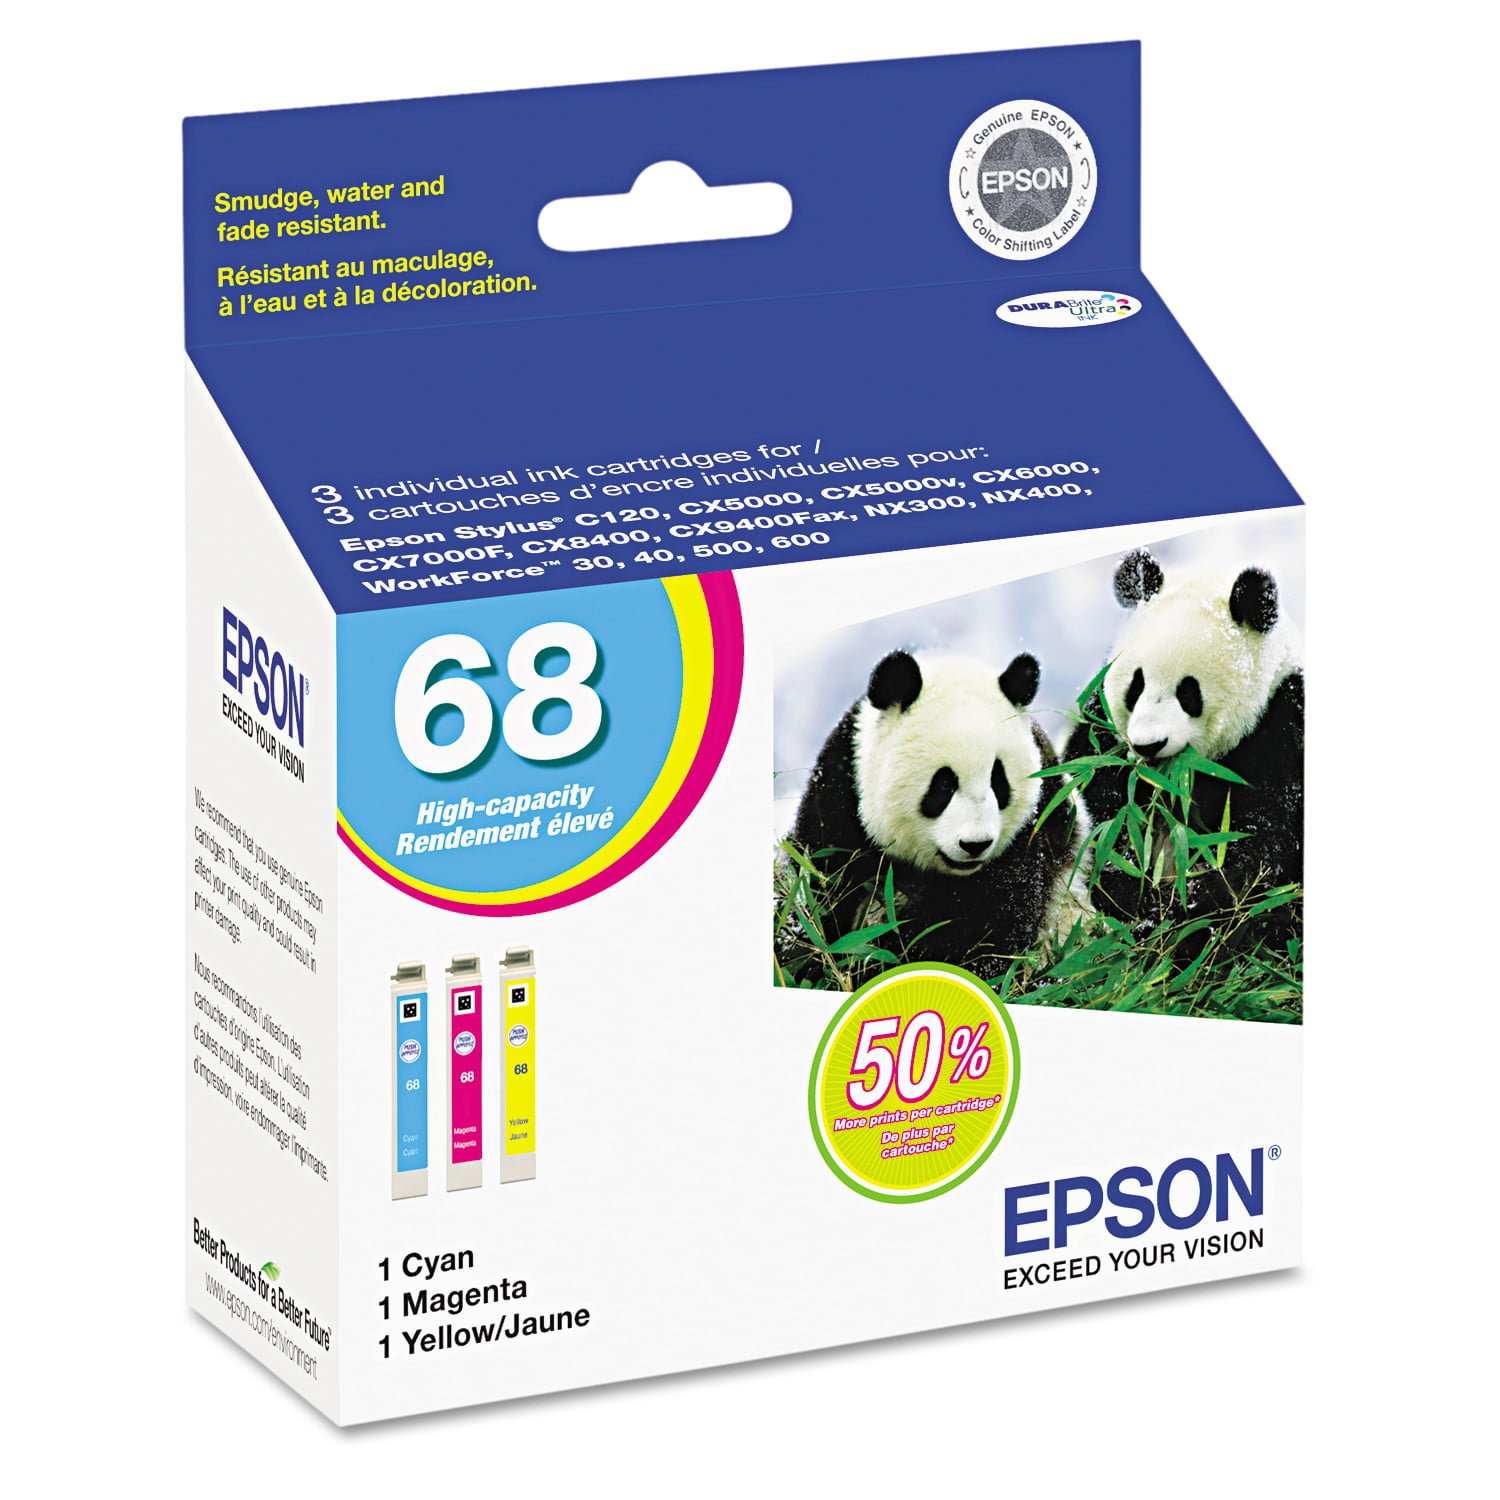 Epson T068520 (68) DURABrite High-Yield Ink, Cyan Magenta Yellow, 3 PK by Epson